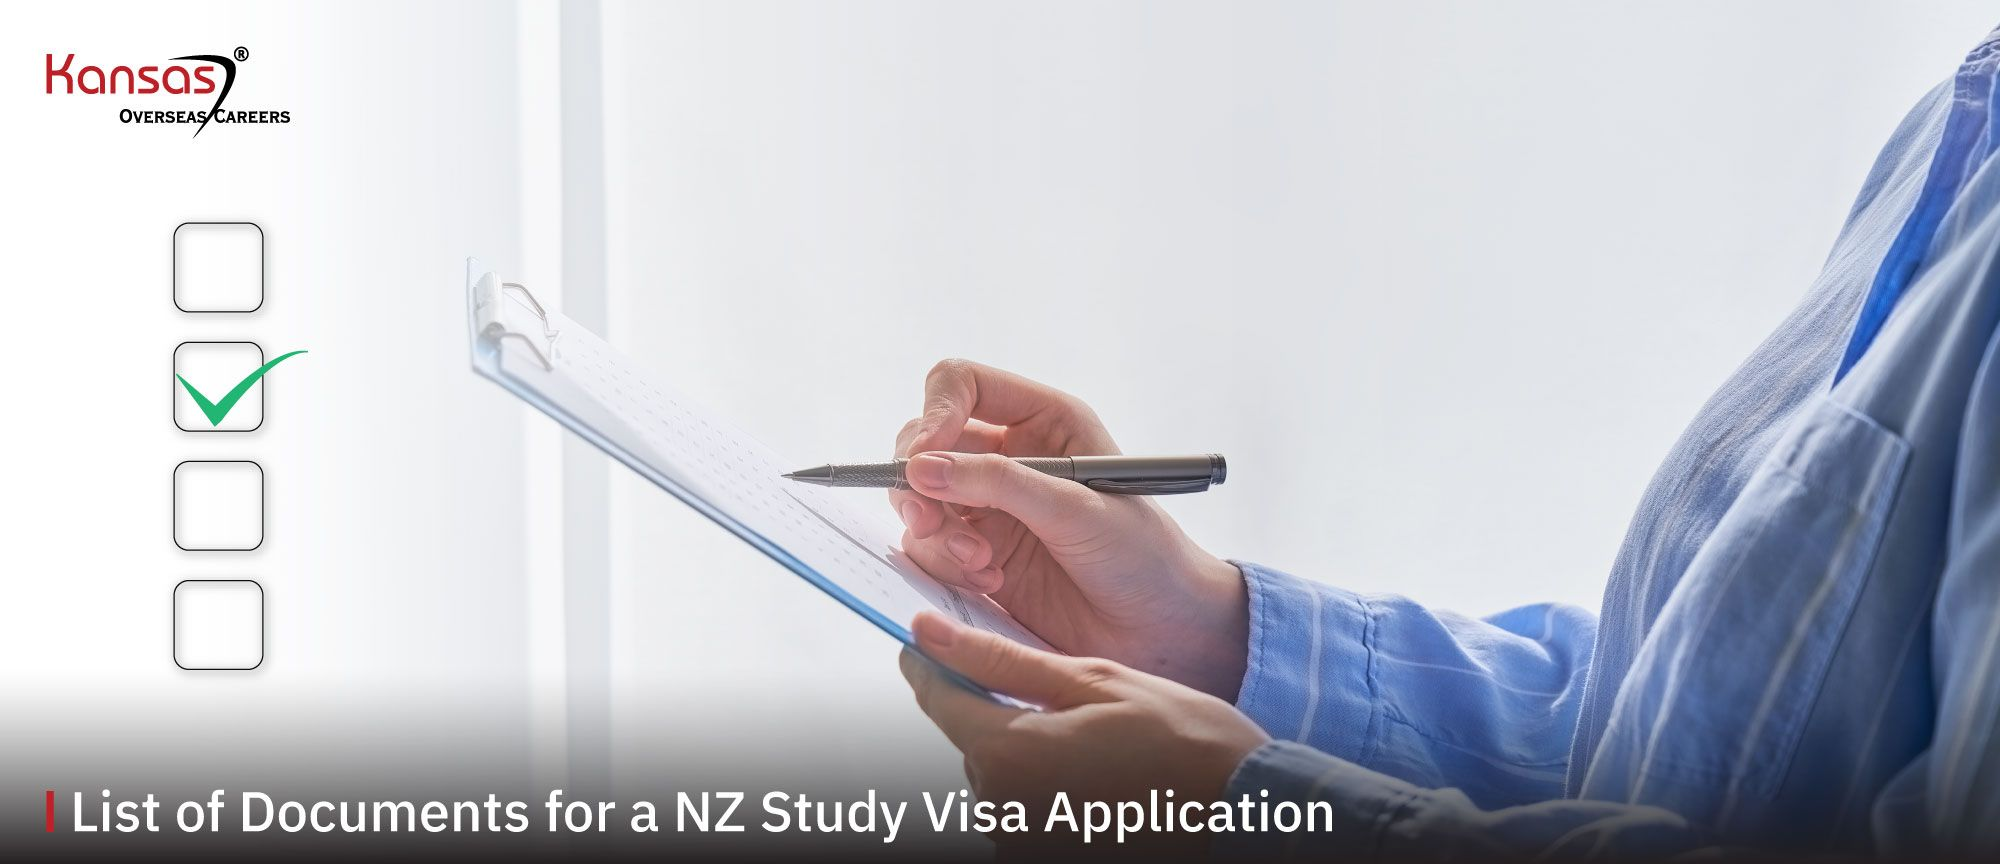 List-of-Documents-for-a-NZ-Study-Visa-Application